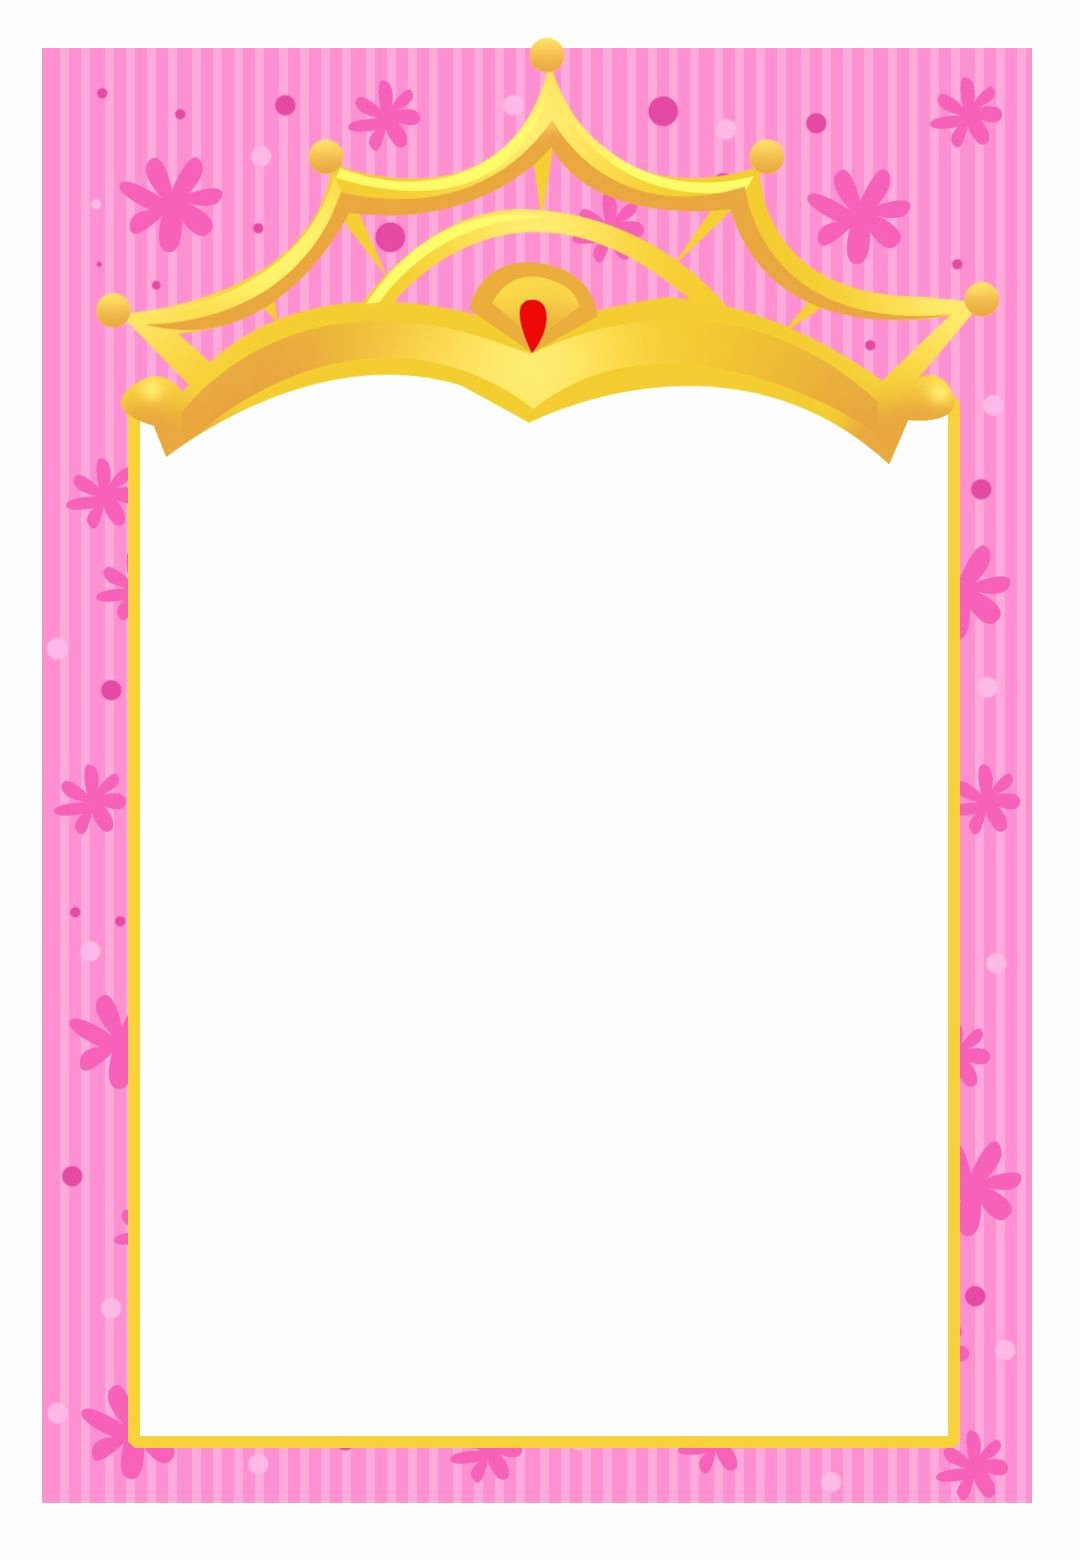 Princess Party Invitation Template Lovely Free Printable A Little Princess Invitation Another Free